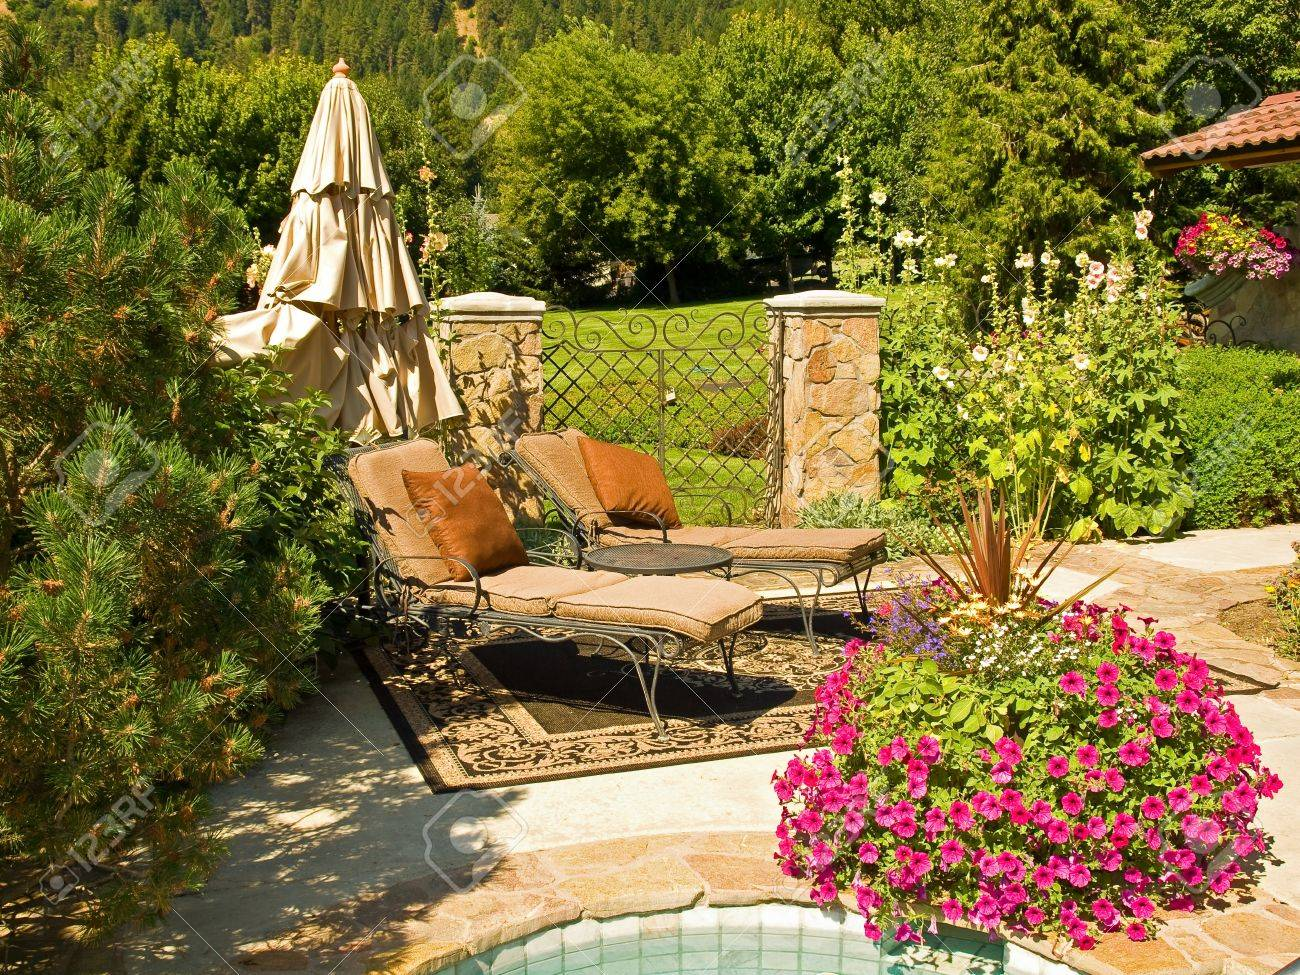 Two Empty Lounge Chairs in a Garden Setting Stock Photo - 10754561